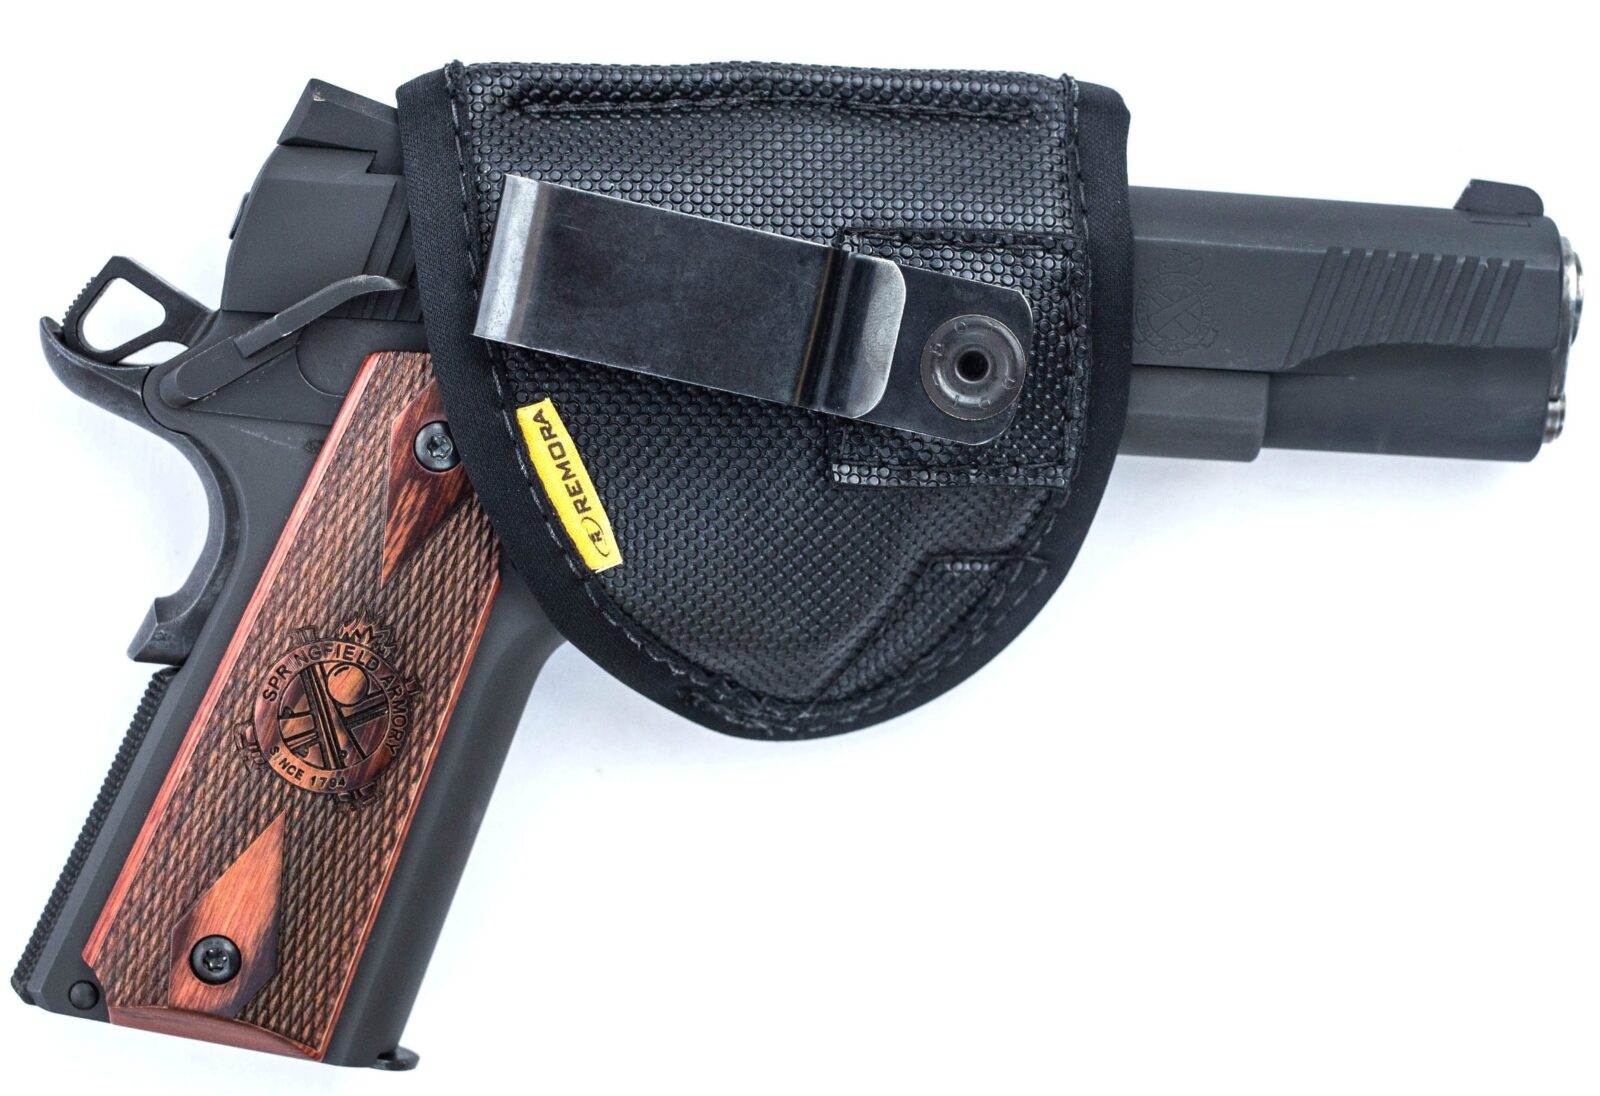 PRO TACTICAL GUN HOLSTER CONCEALED CARRY IWB OWB TAURUS PT 809 9mm